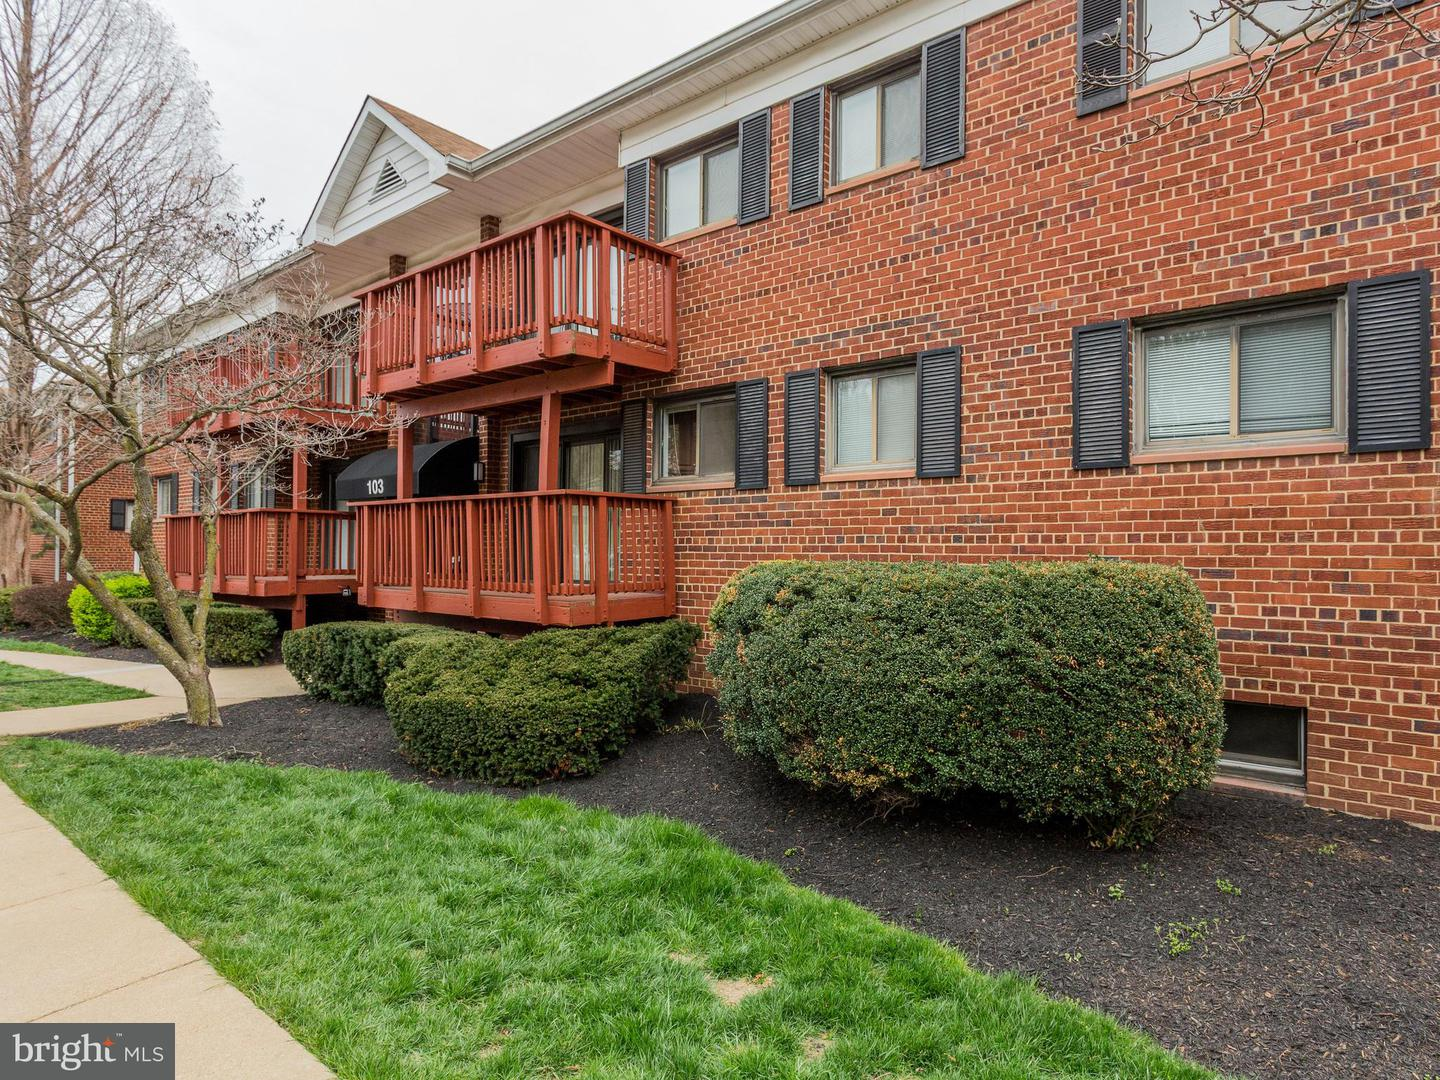 Other Residential for Rent at 103 Skyhill Rd #6 Alexandria, Virginia 22314 United States